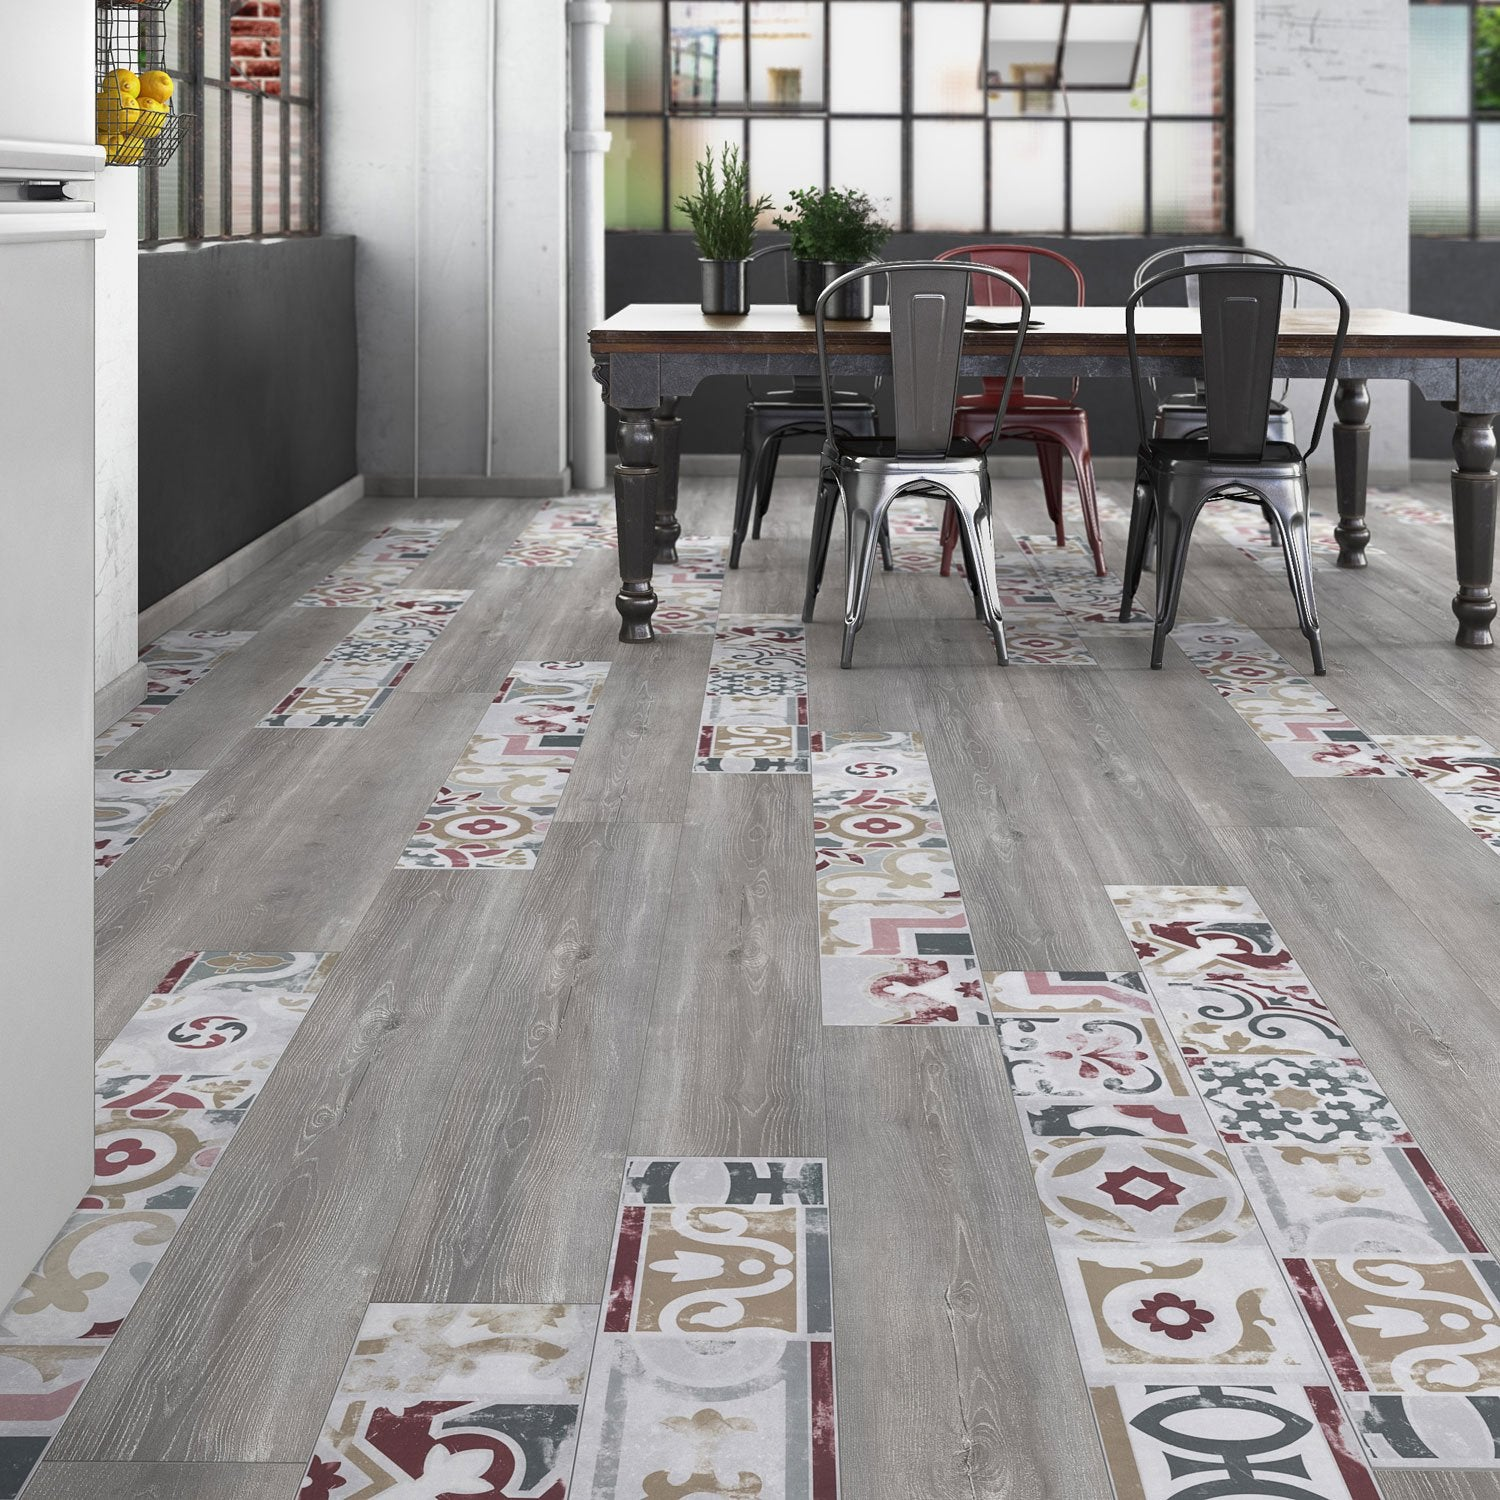 Sol stratifi cr ativ 39 composition mix bois carreaux de - Parquet stratifie salle de bain leroy merlin ...